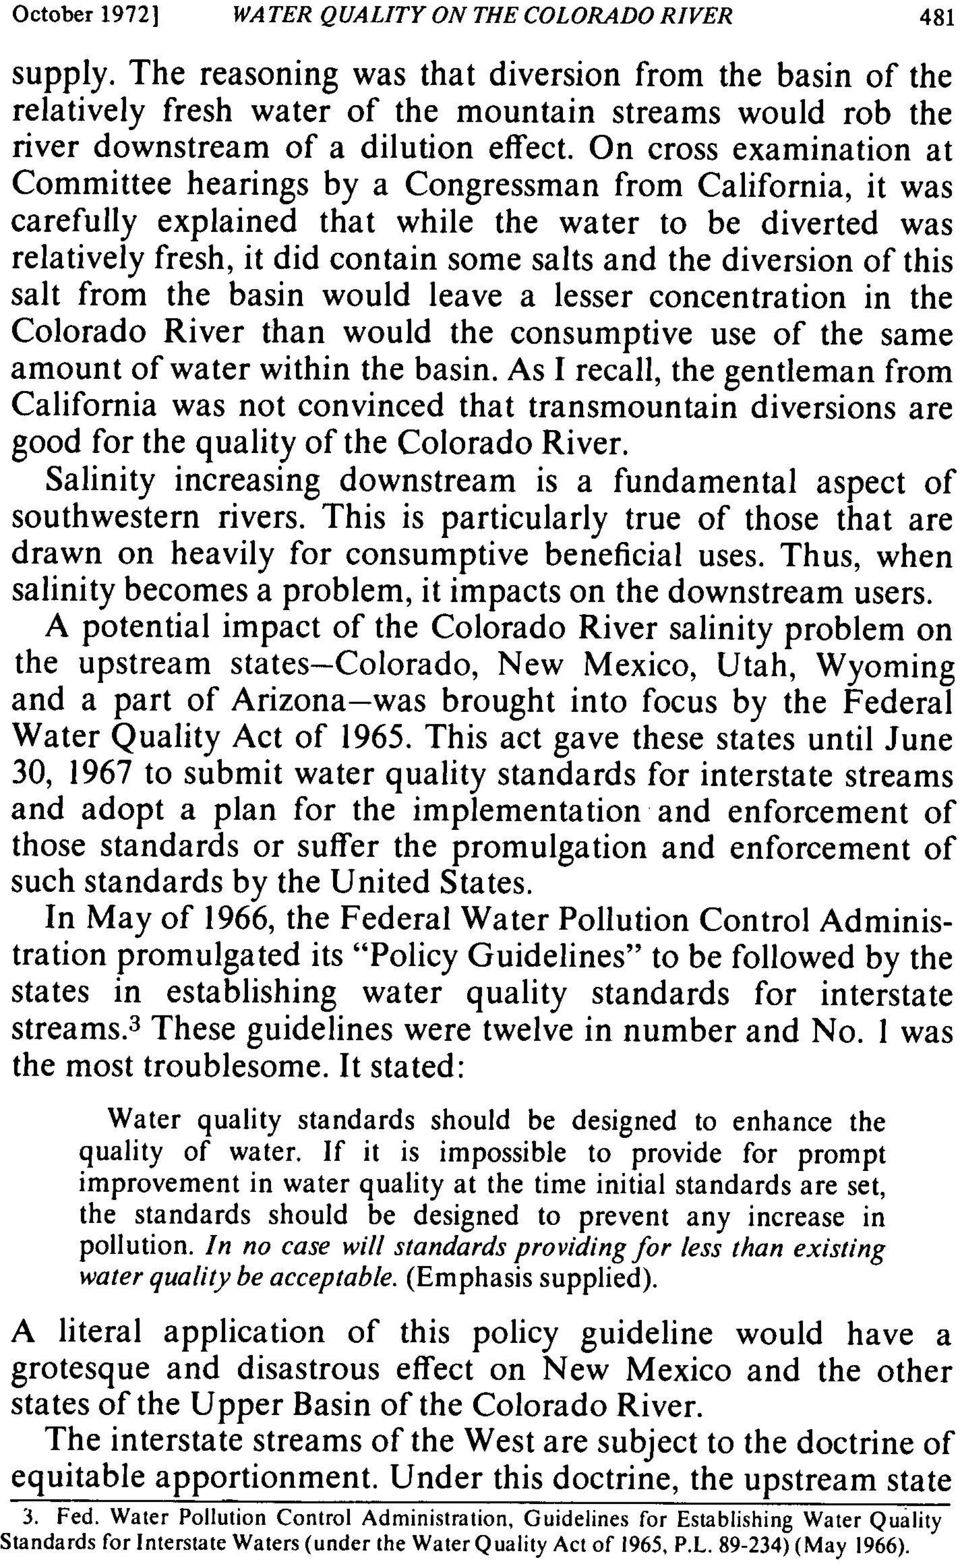 On cross examination at Committee hearings by a Congressman from California, it was carefully explained that while the water to be diverted was relatively fresh, it did contain some salts and the